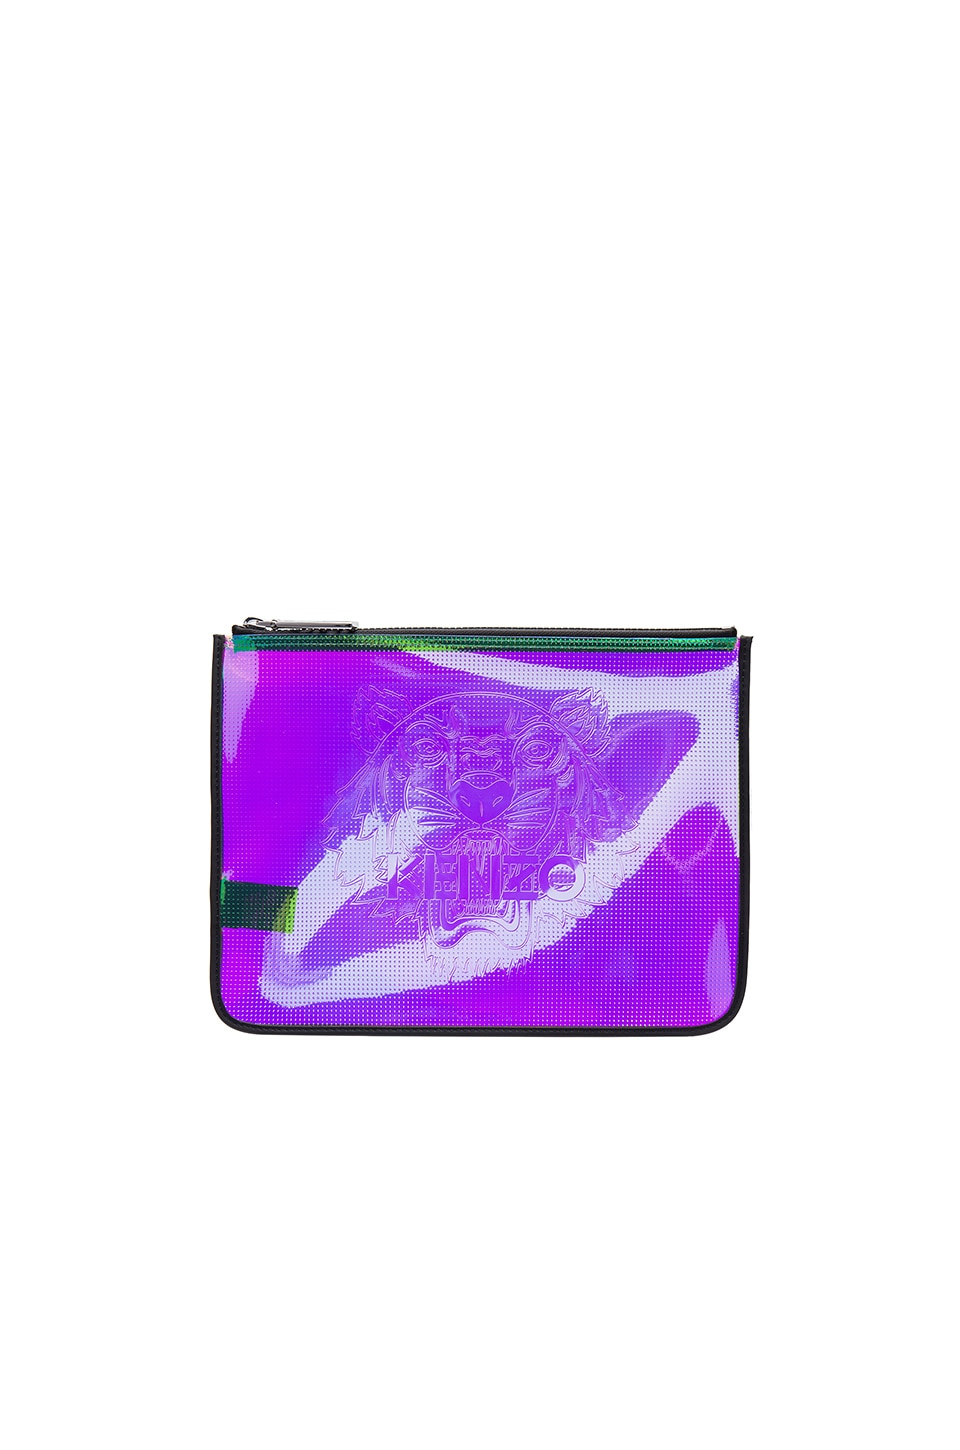 Kenzo Iridescent PVC Clutch in Multi